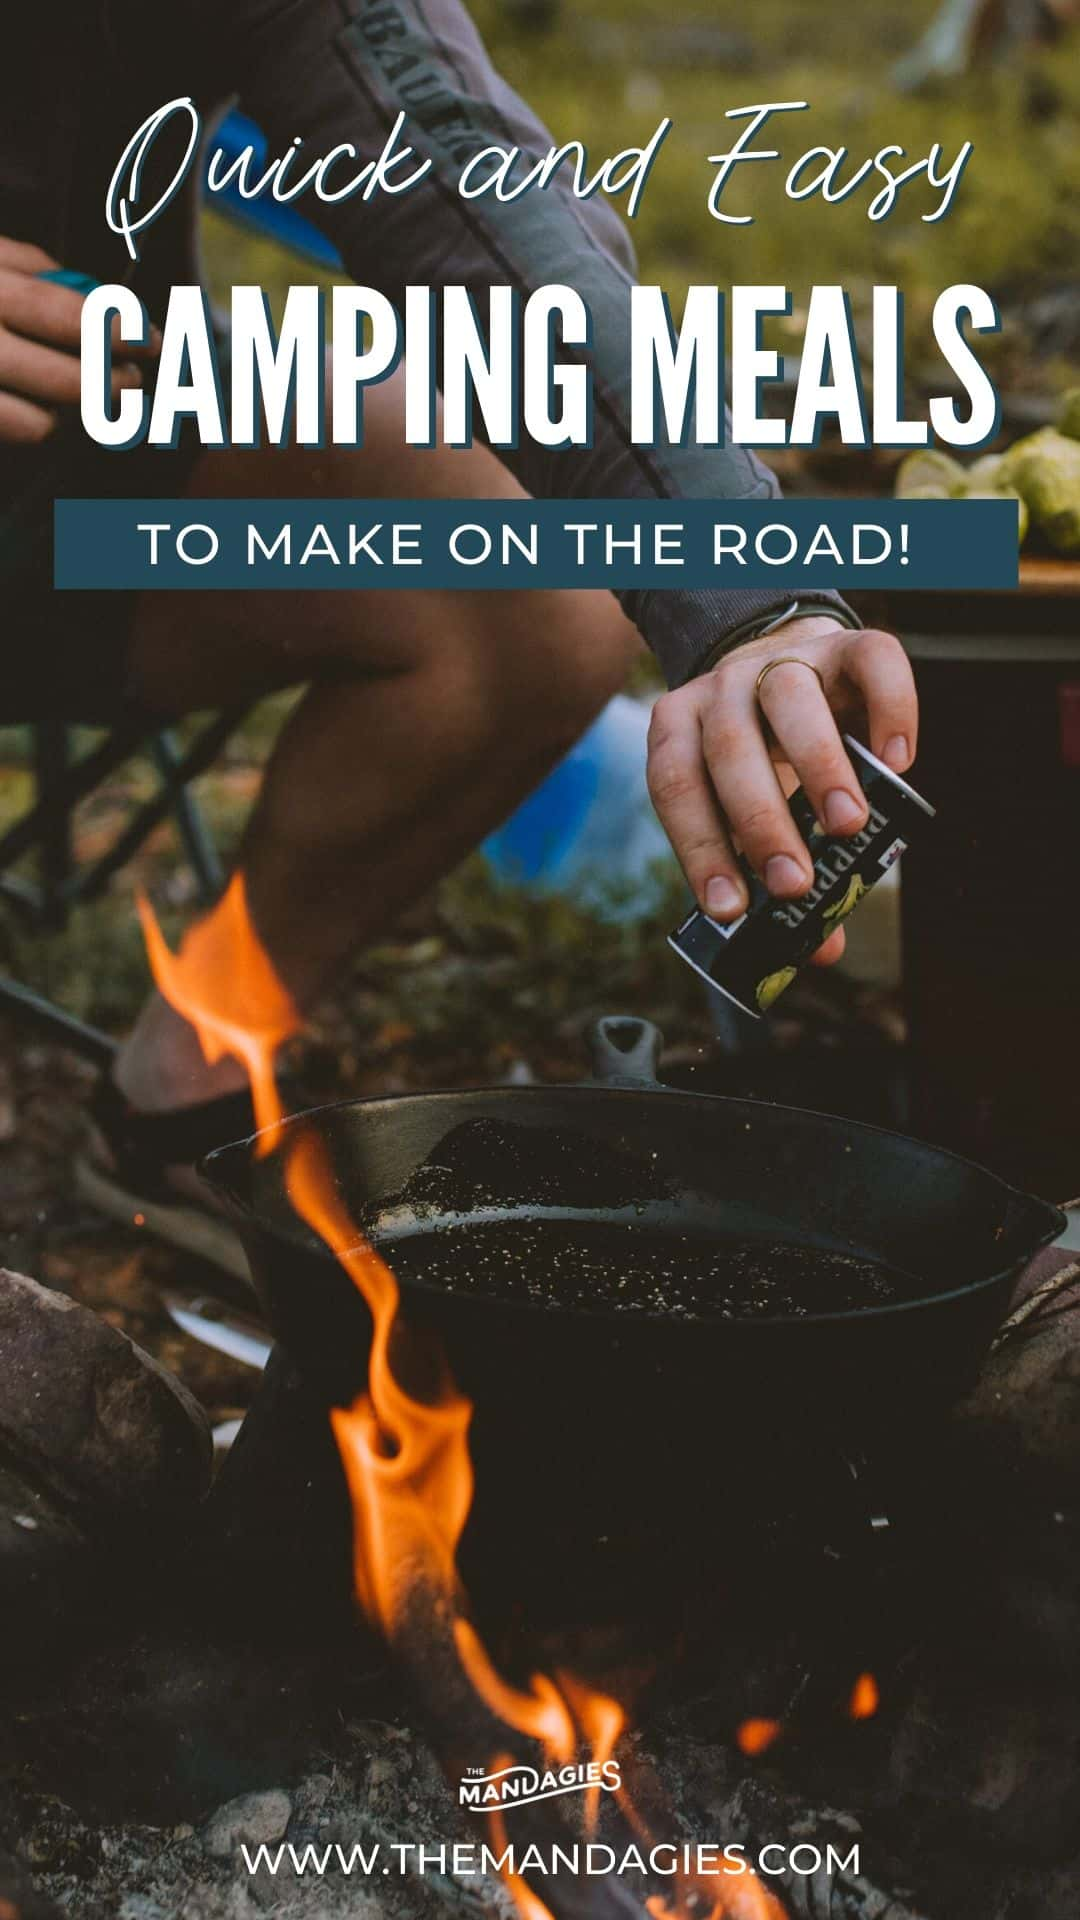 Looking for quick and easy car camping meals to make on the road? We're sharing all the best cooking tools, car camping meals, and tips on how to save money eating out while traveling! Save this post for your next adventurous road trip! #roadtrip #carcamping #campingmeals #campingrecipes #camping #easymeals #quickmeals #campfirerecipes